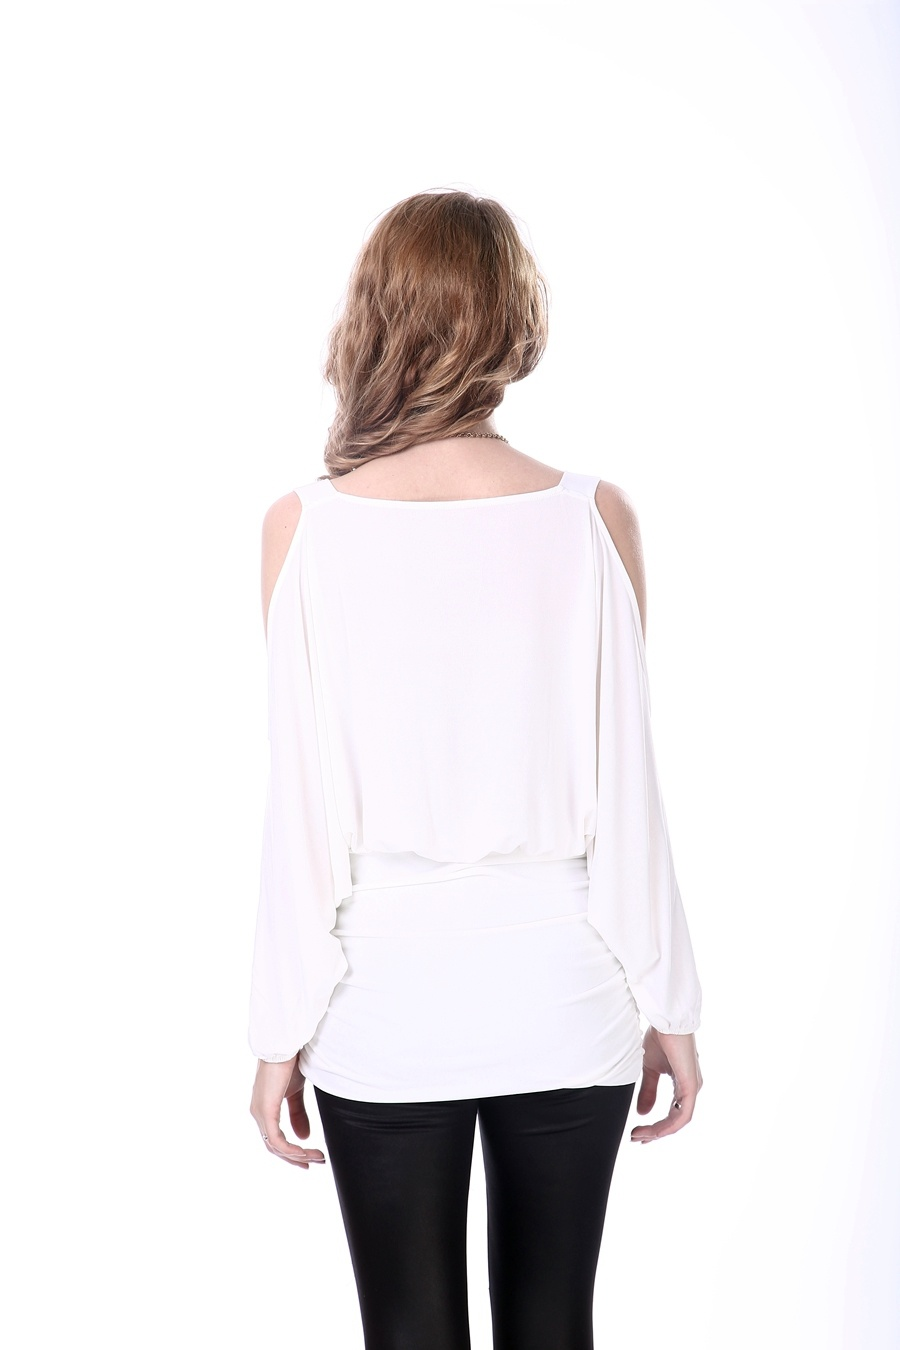 Women′s White New Blouse Neck Design Korea Design Blouse